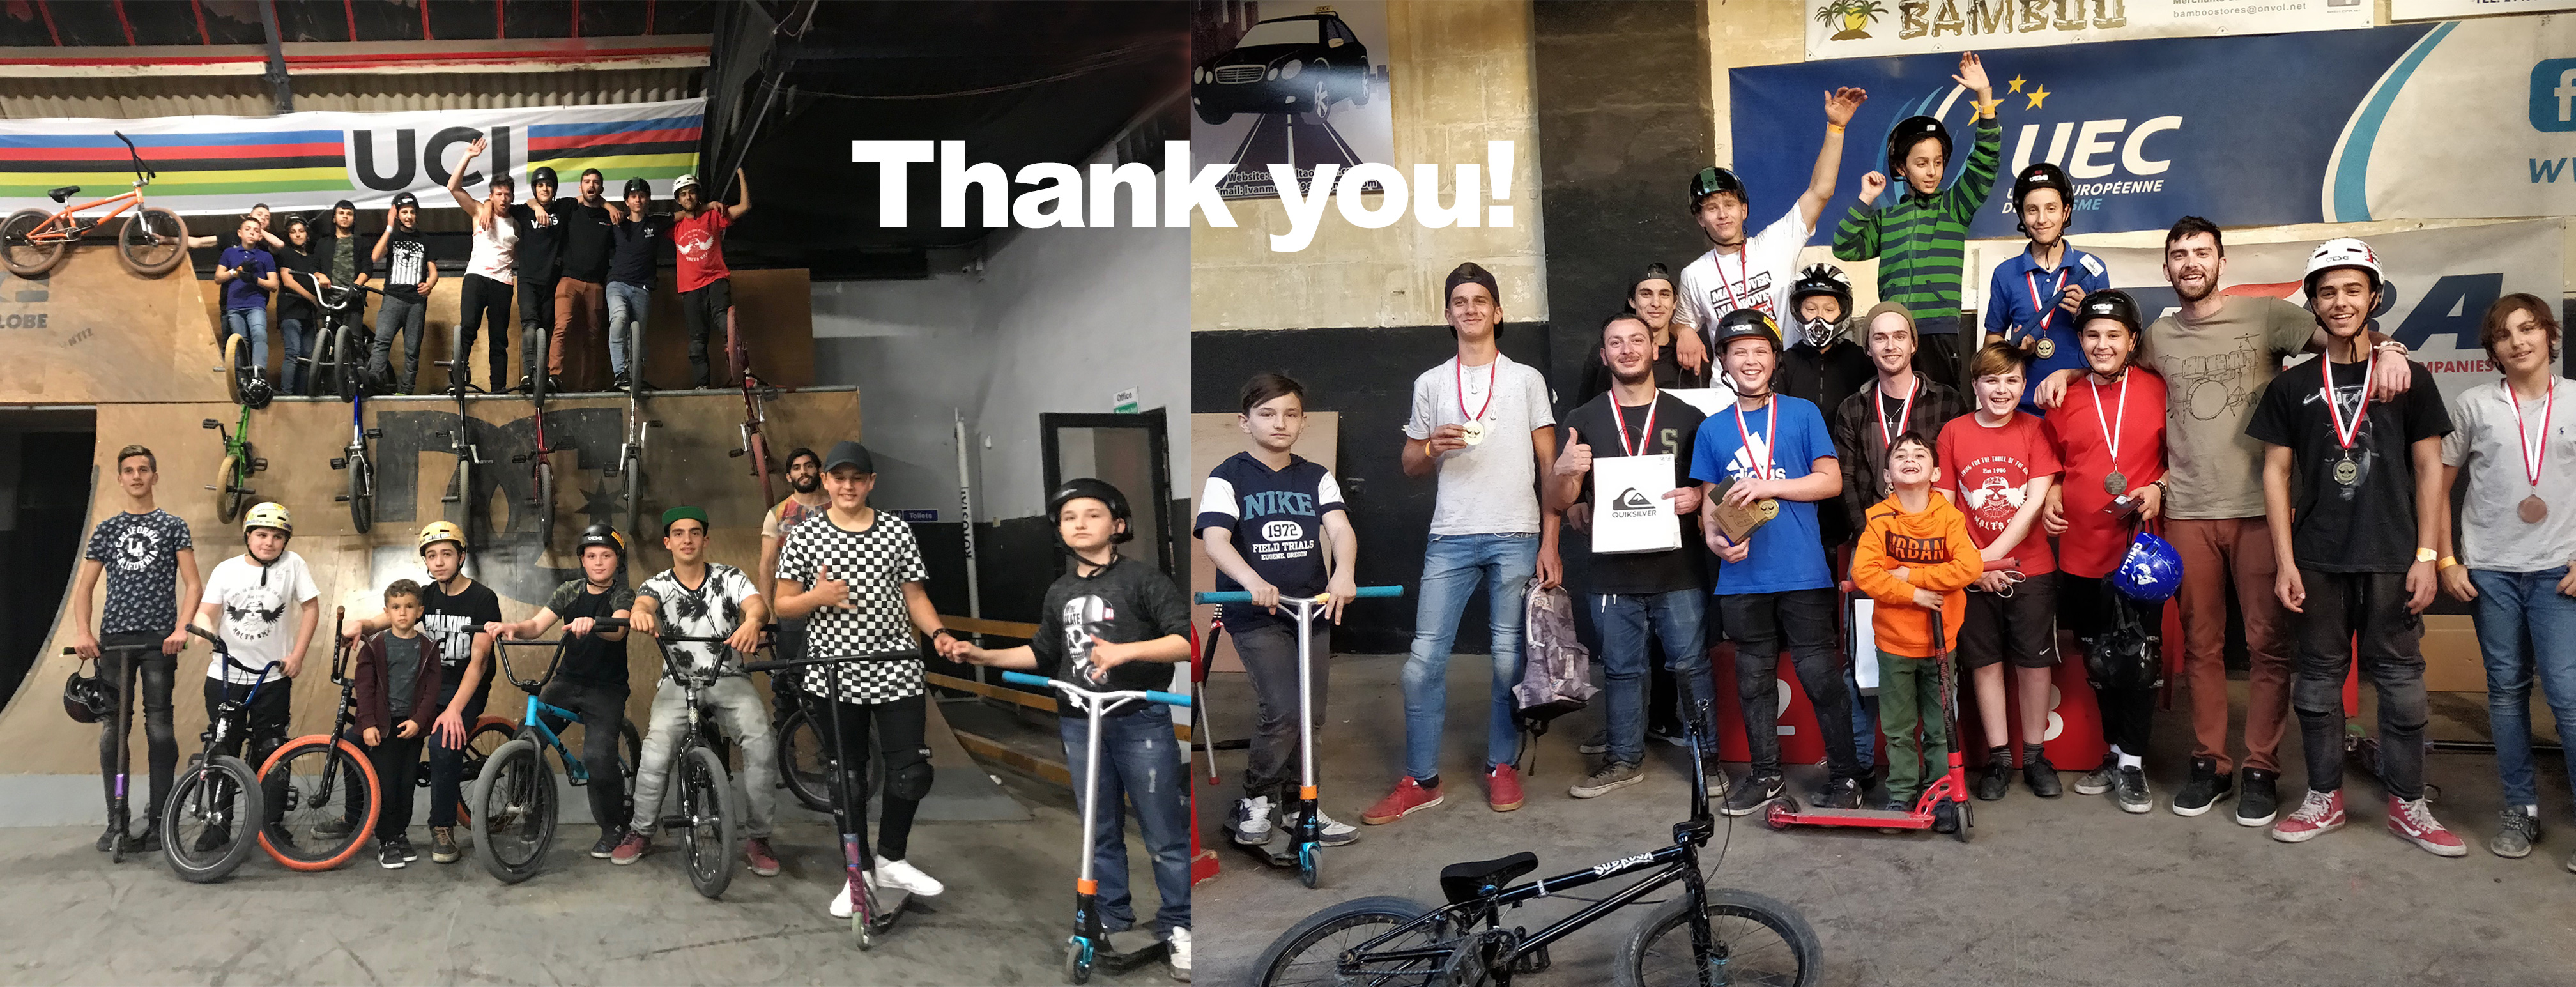 BMX Fest – Easter Edition 2018 a great success! Thank you!